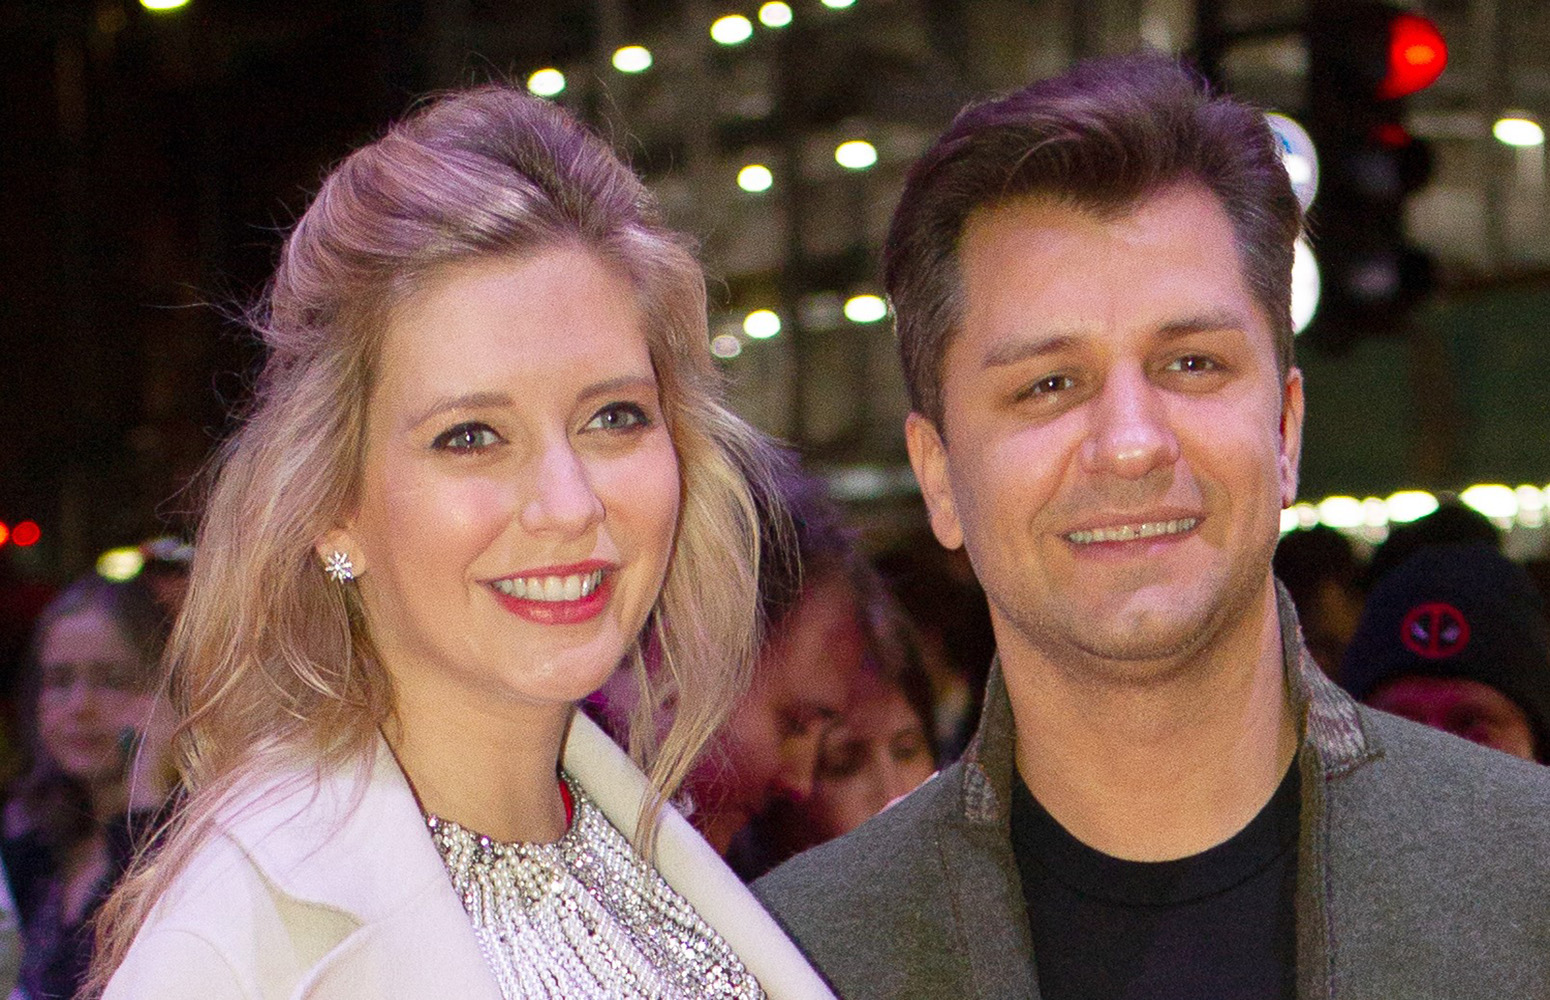 Rachel Riley shares family photo to mark wedding anniversary with husband Pasha Kovalev